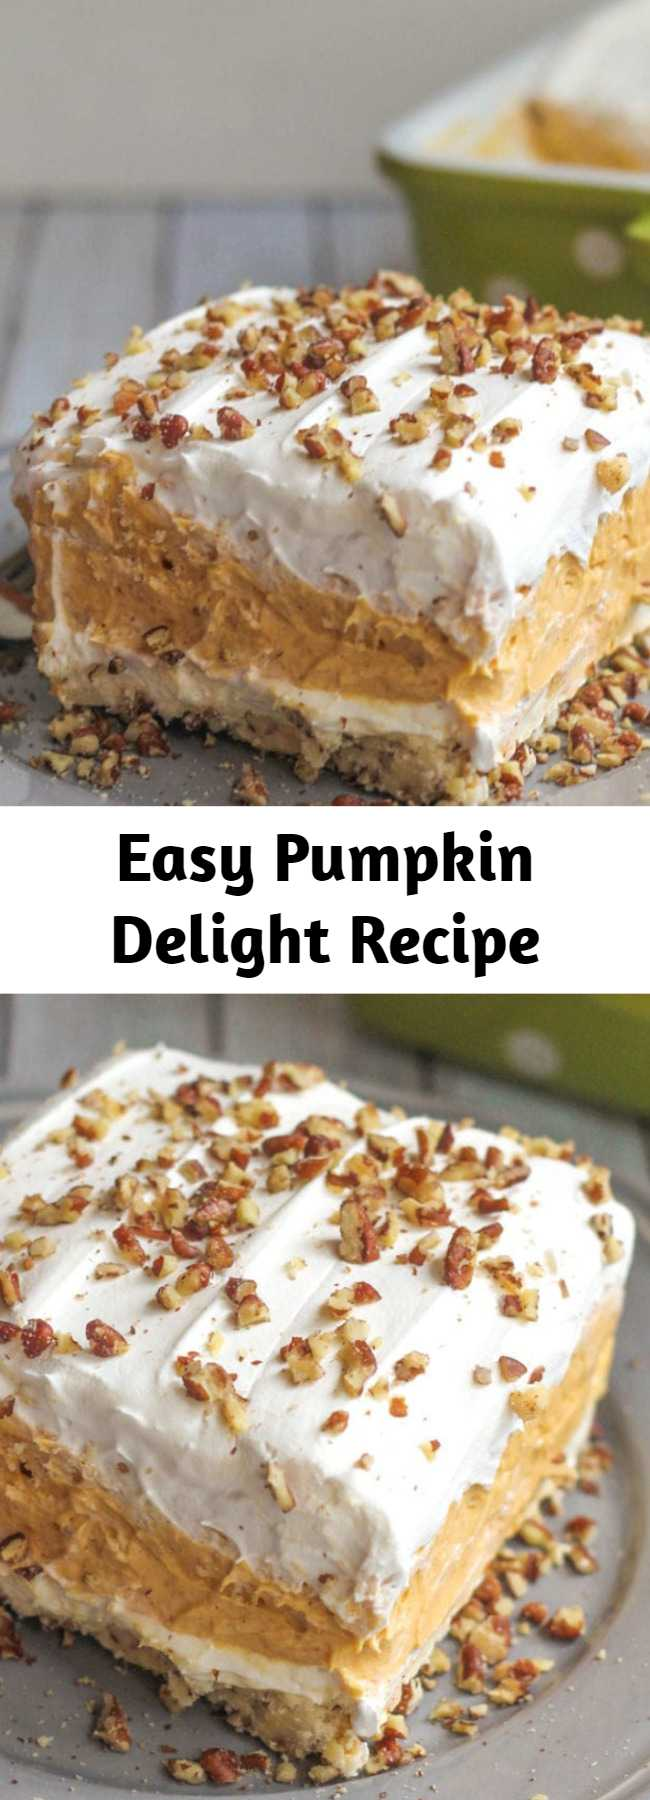 Easy Pumpkin Delight Recipe - With A Buttery Pecan Crust, A Whipped Cream Cheese Layer, Light And Fluffy Pumpkin Spice Pudding, And More Whipped Cream Topped Off With Chopped Pecans, This Pumpkin Delight Dessert Is Absolutely Irresistible! They all make great Thanksgiving desserts.